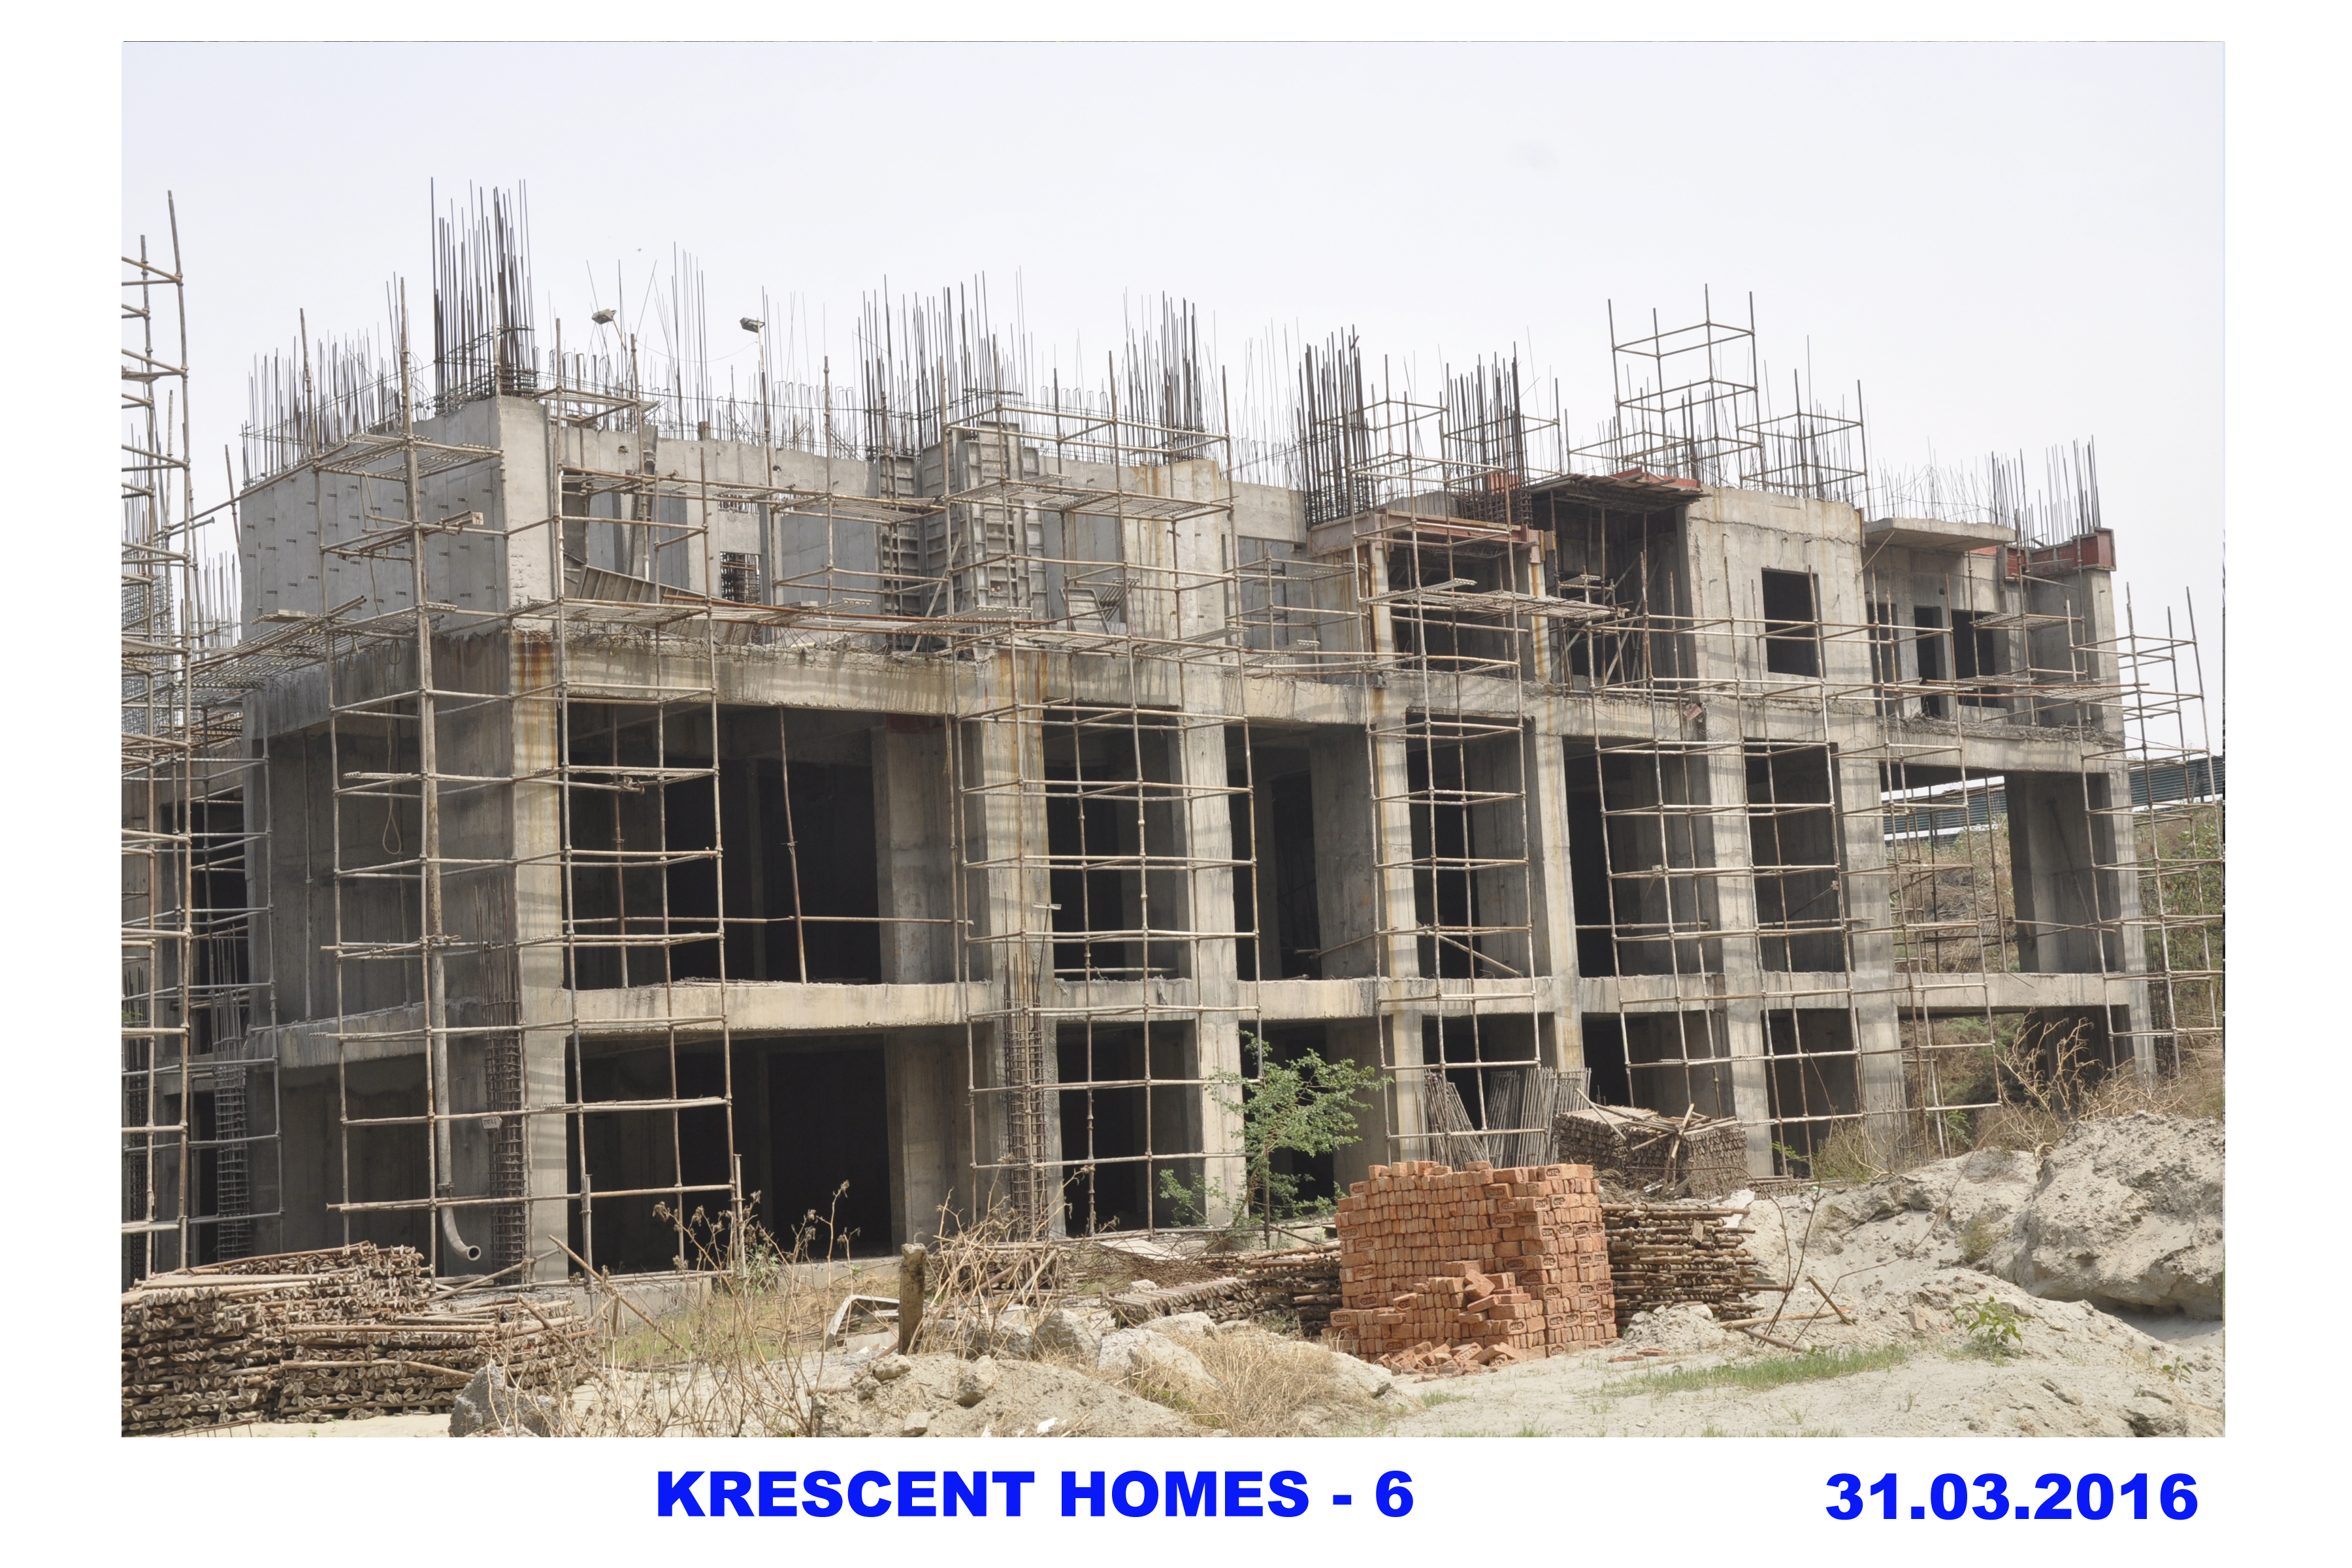 Krescent Homes Tower - 6